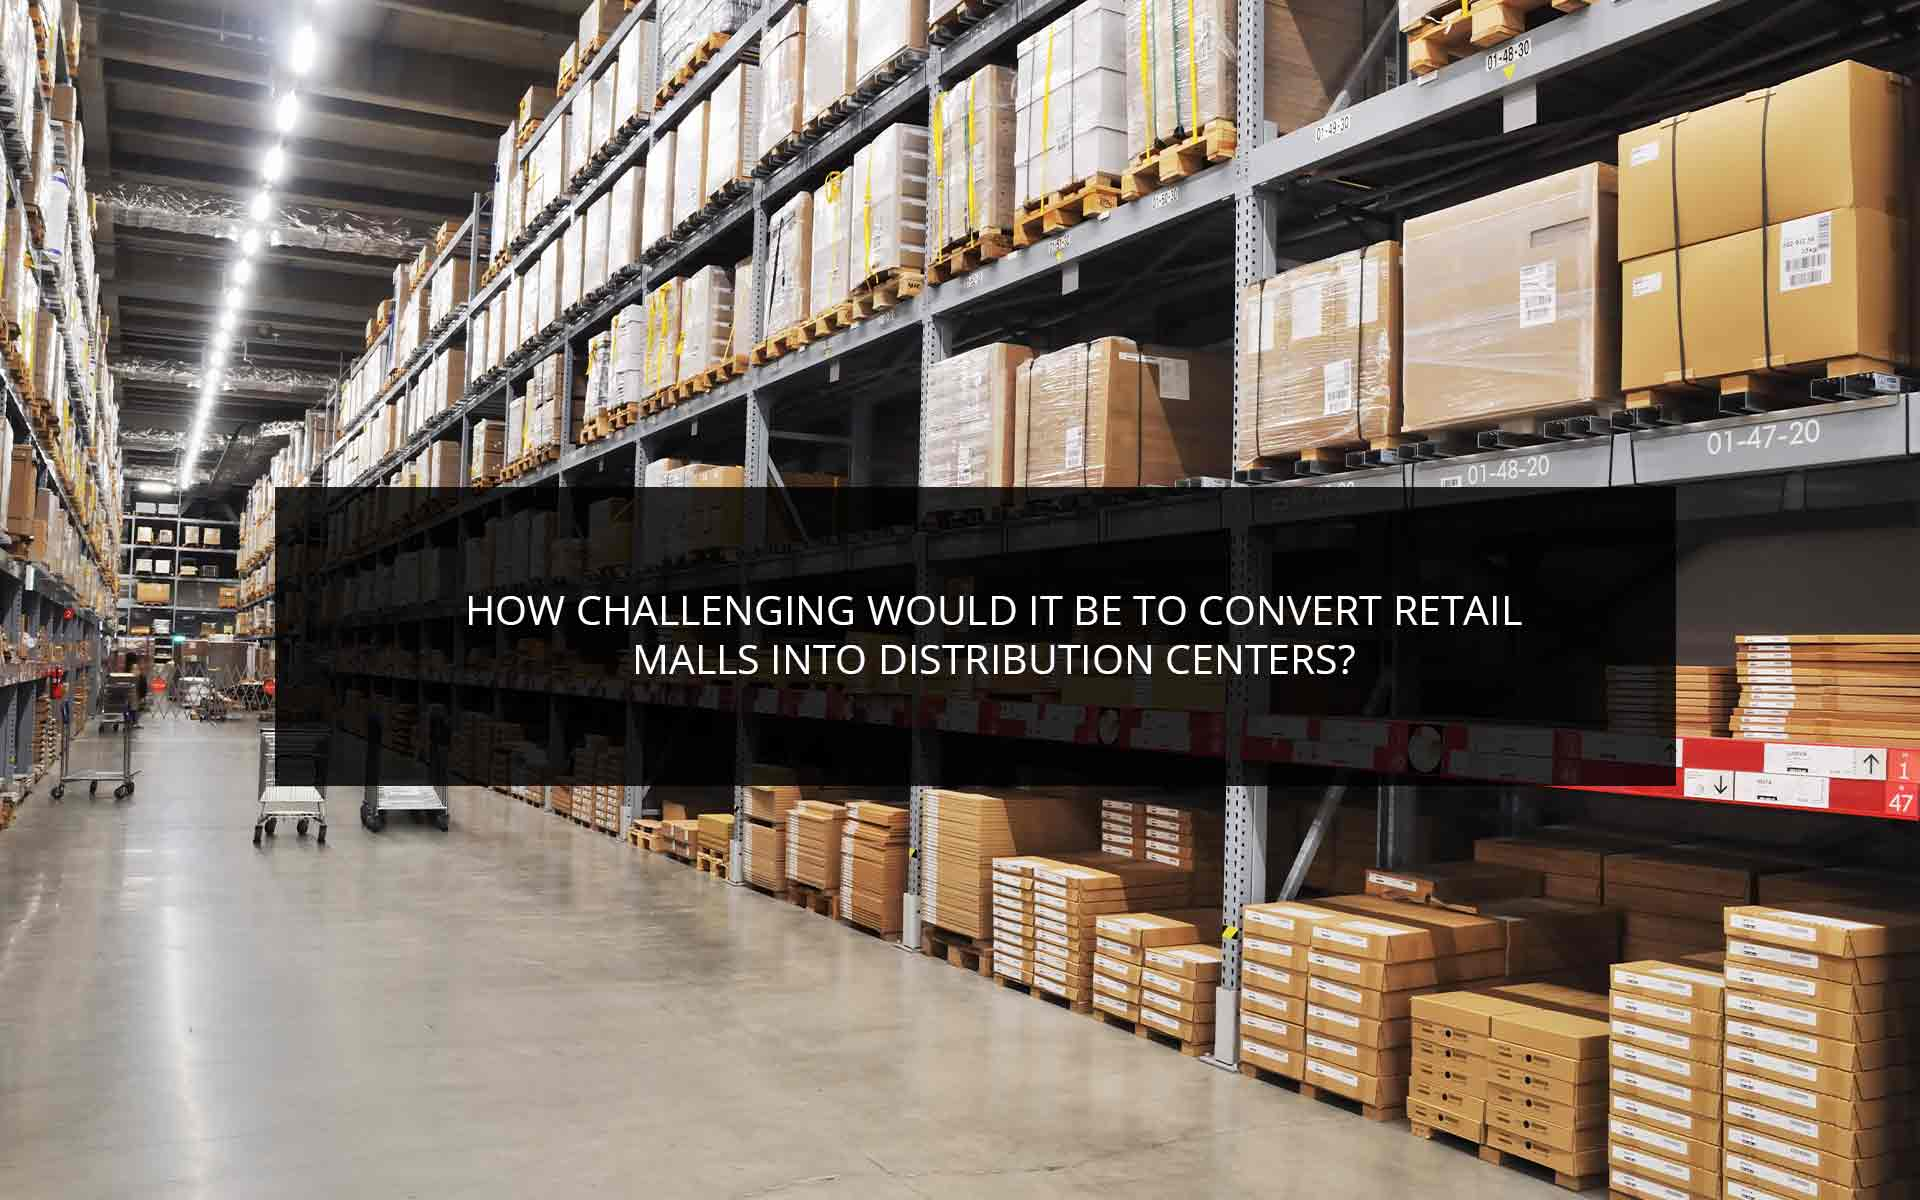 How Challenging Would It Be to Convert Retail Malls Into Distribution Centers?